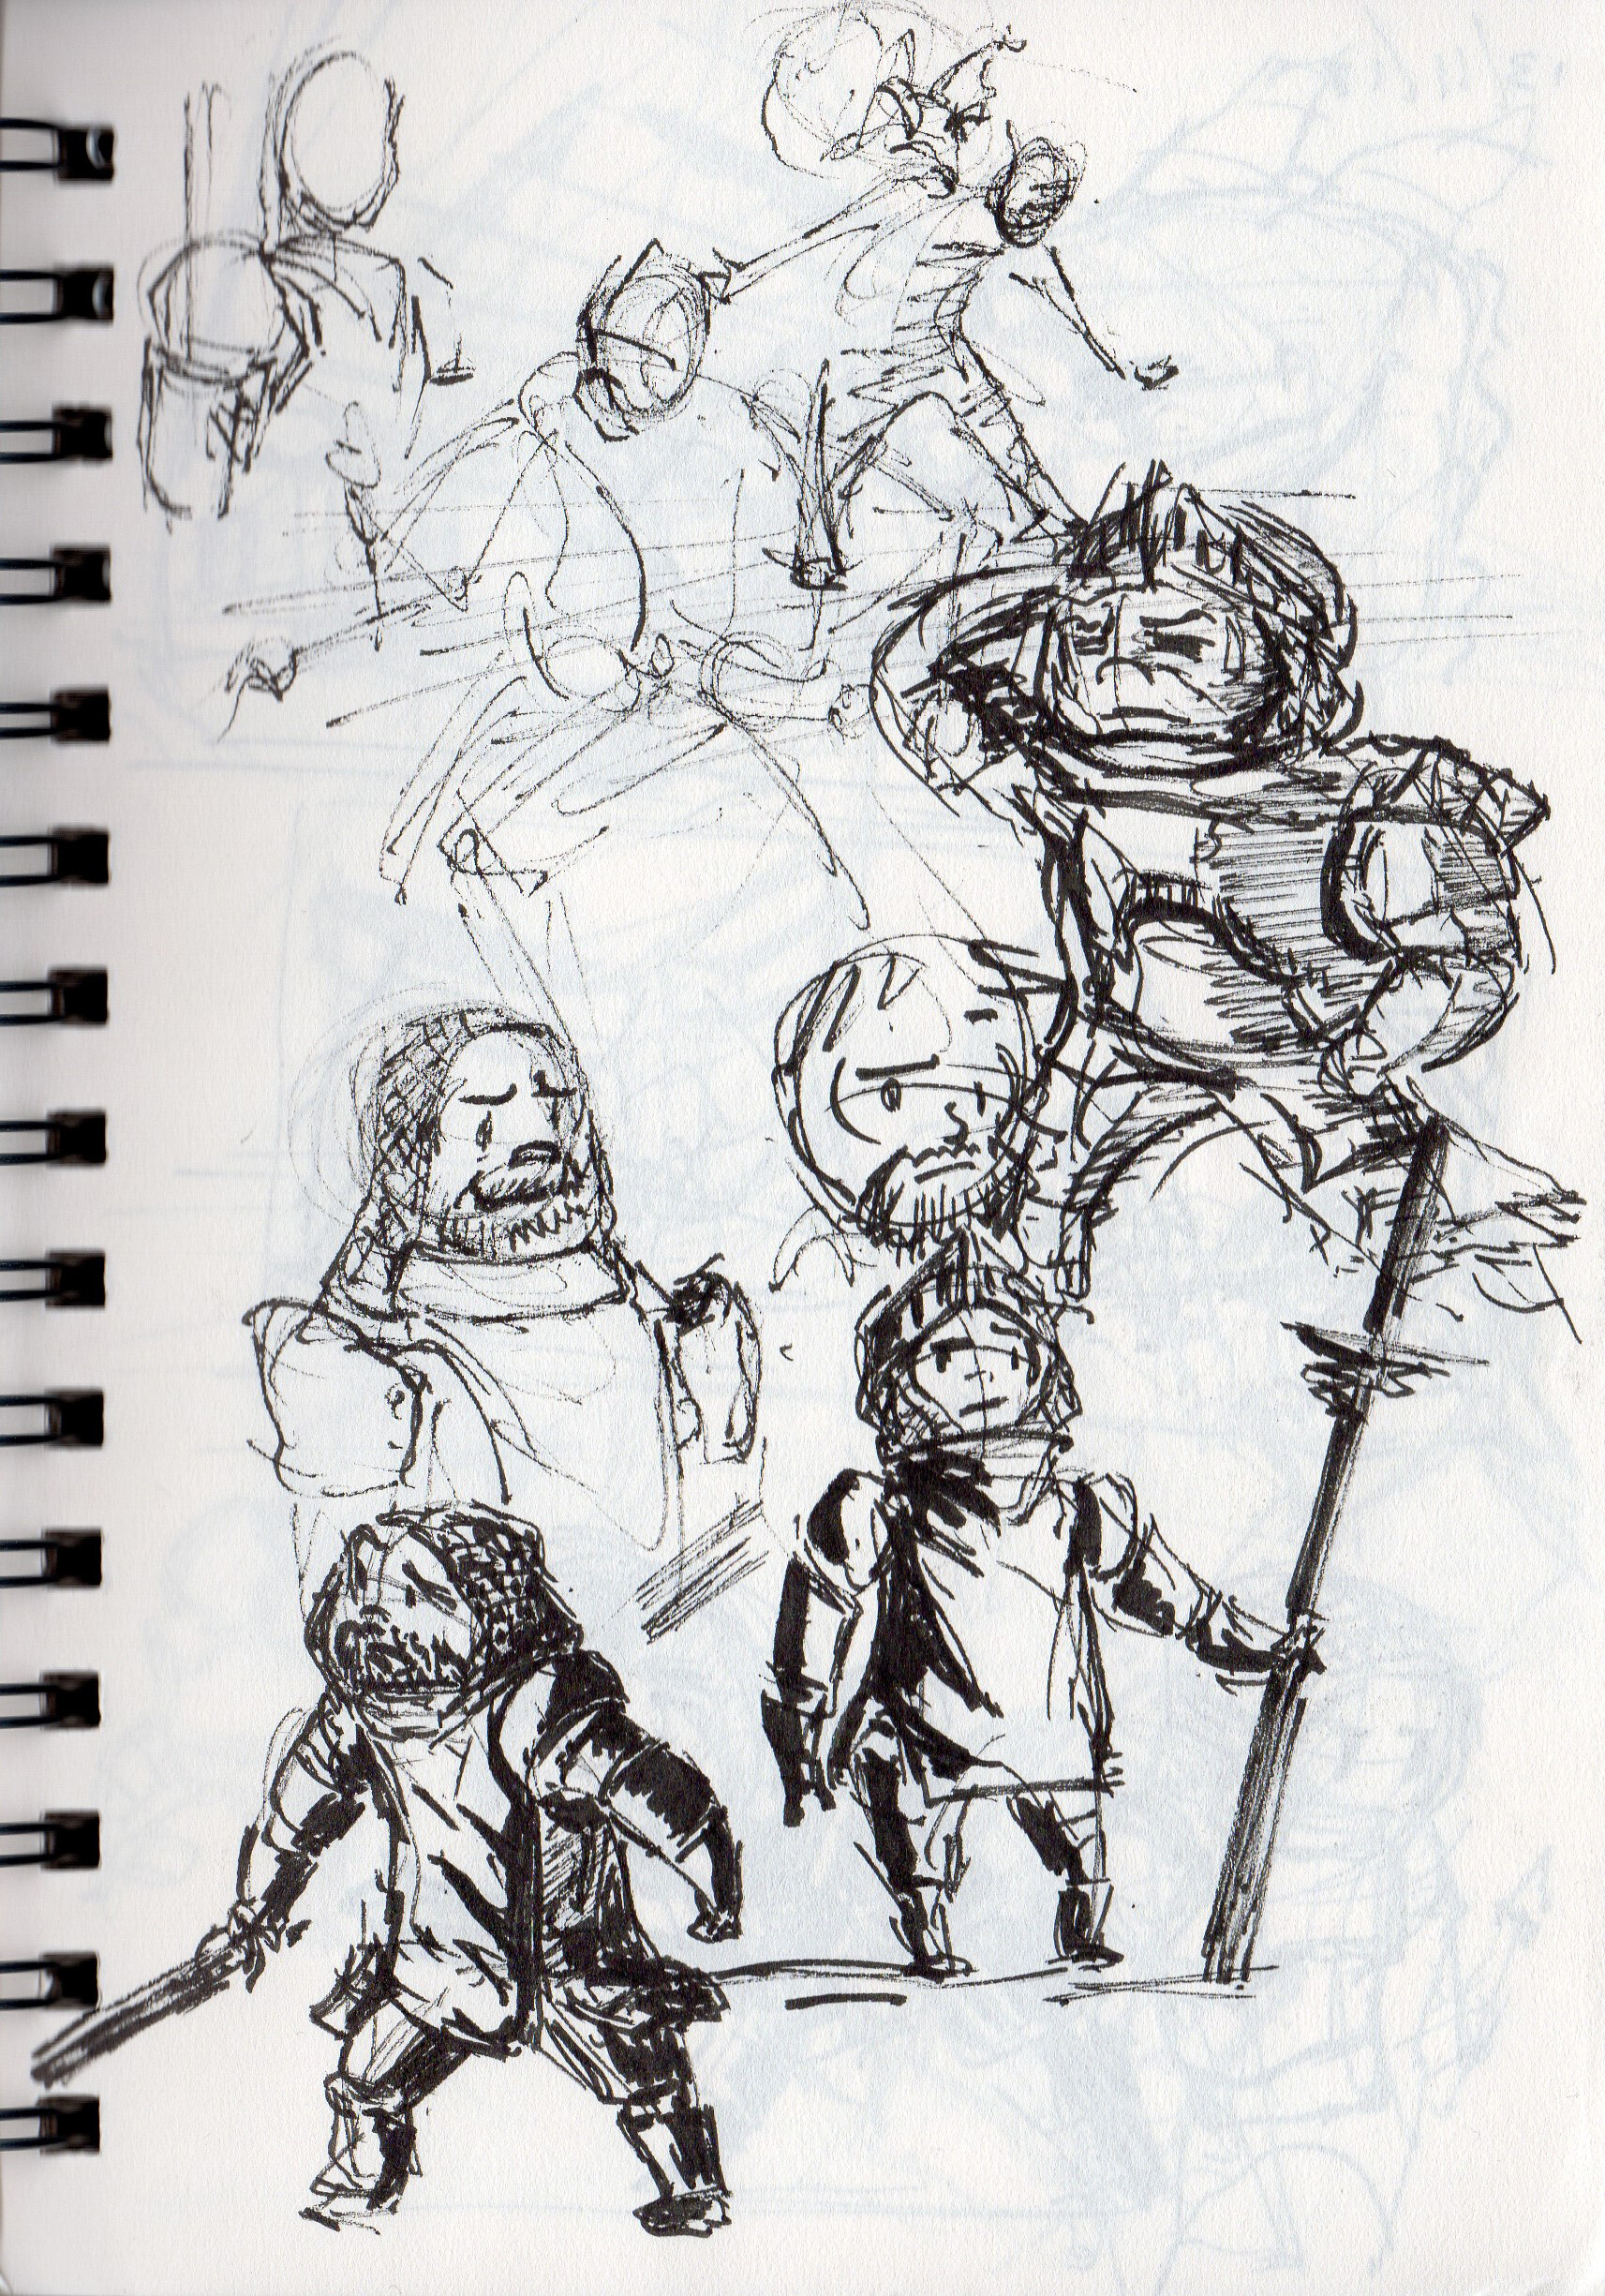 Joshua condison little knight sketchs p1